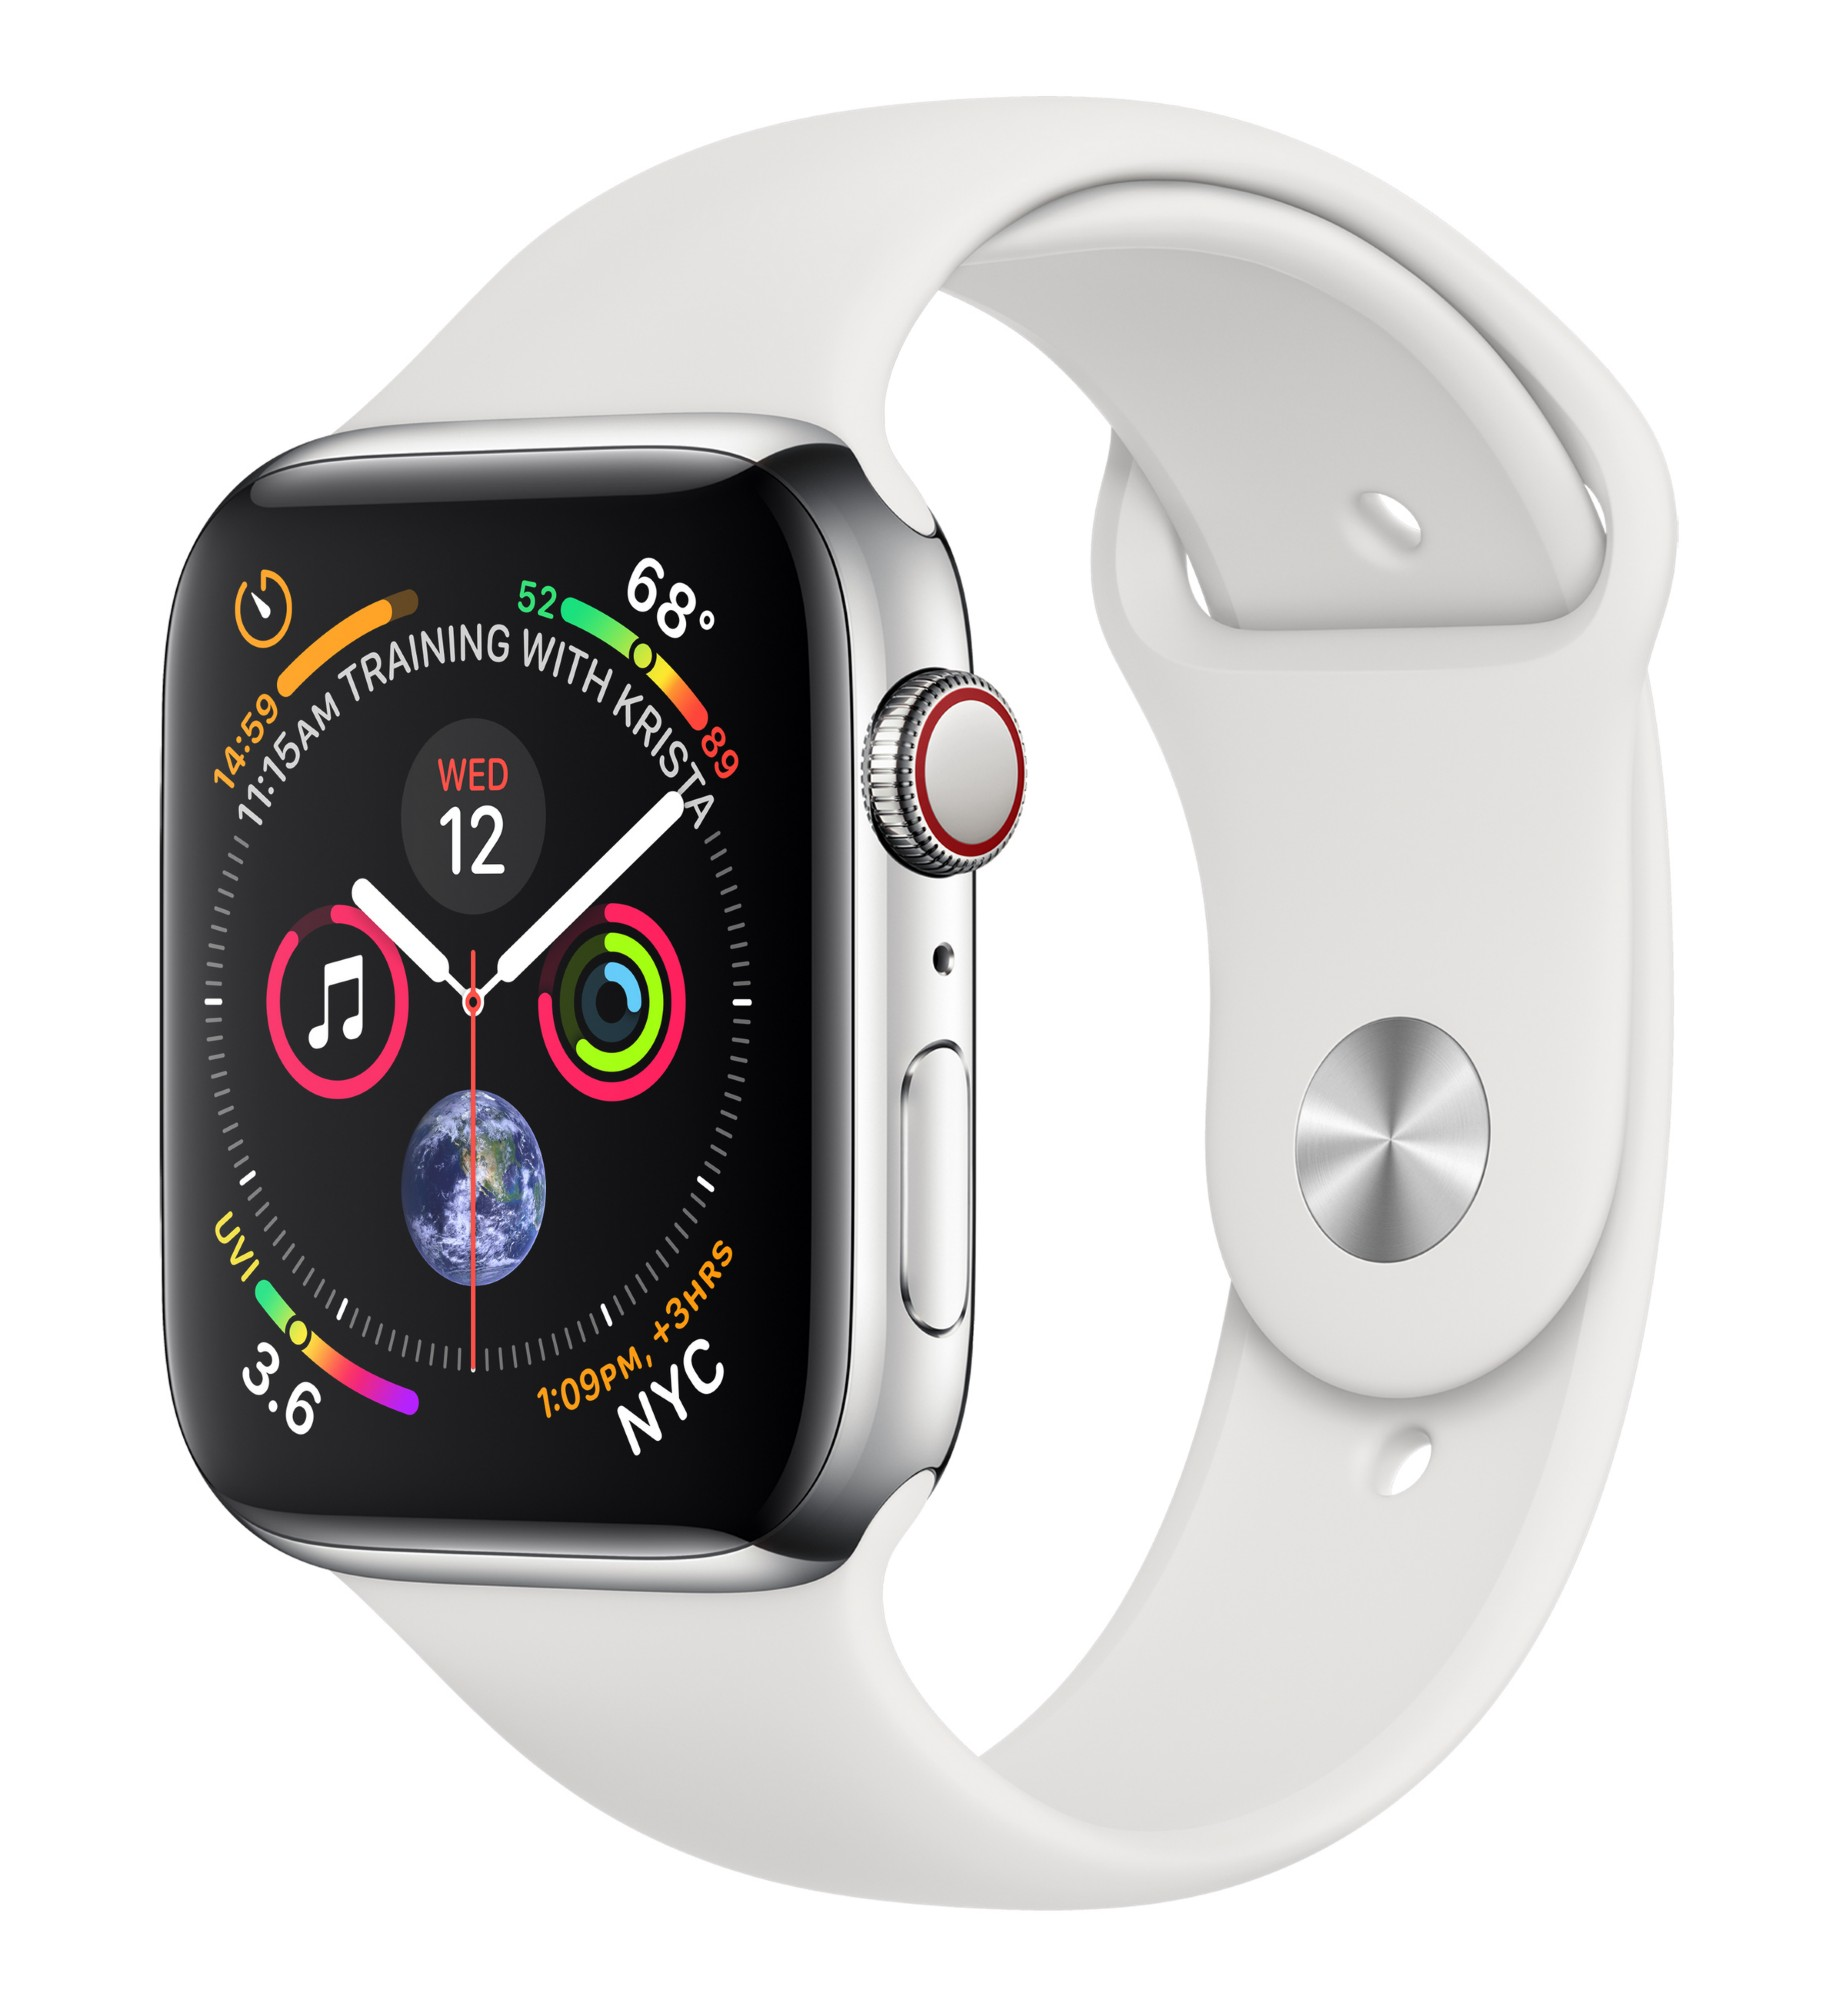 APPLE MTX02B/A WATCH SERIES 4 SMARTWATCH STAINLESS STEEL OLED CELLULAR GPS (SATELLITE)